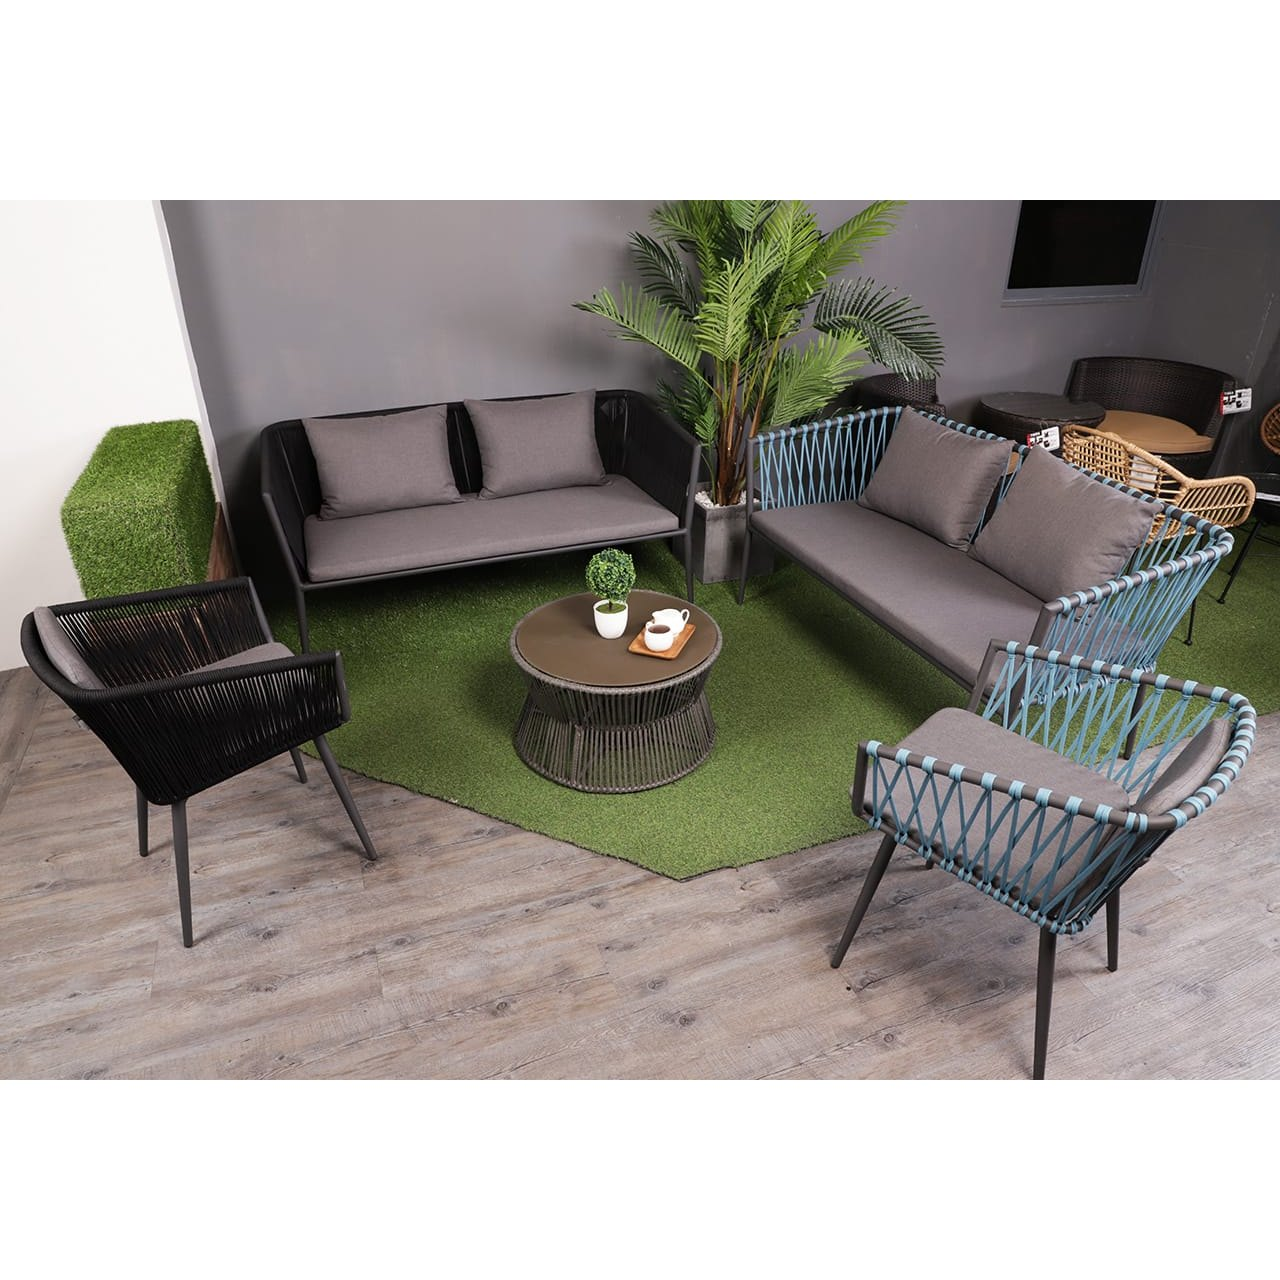 Jamaica Outdoor 2 Seater Sofa Comfort Design The Chair Table